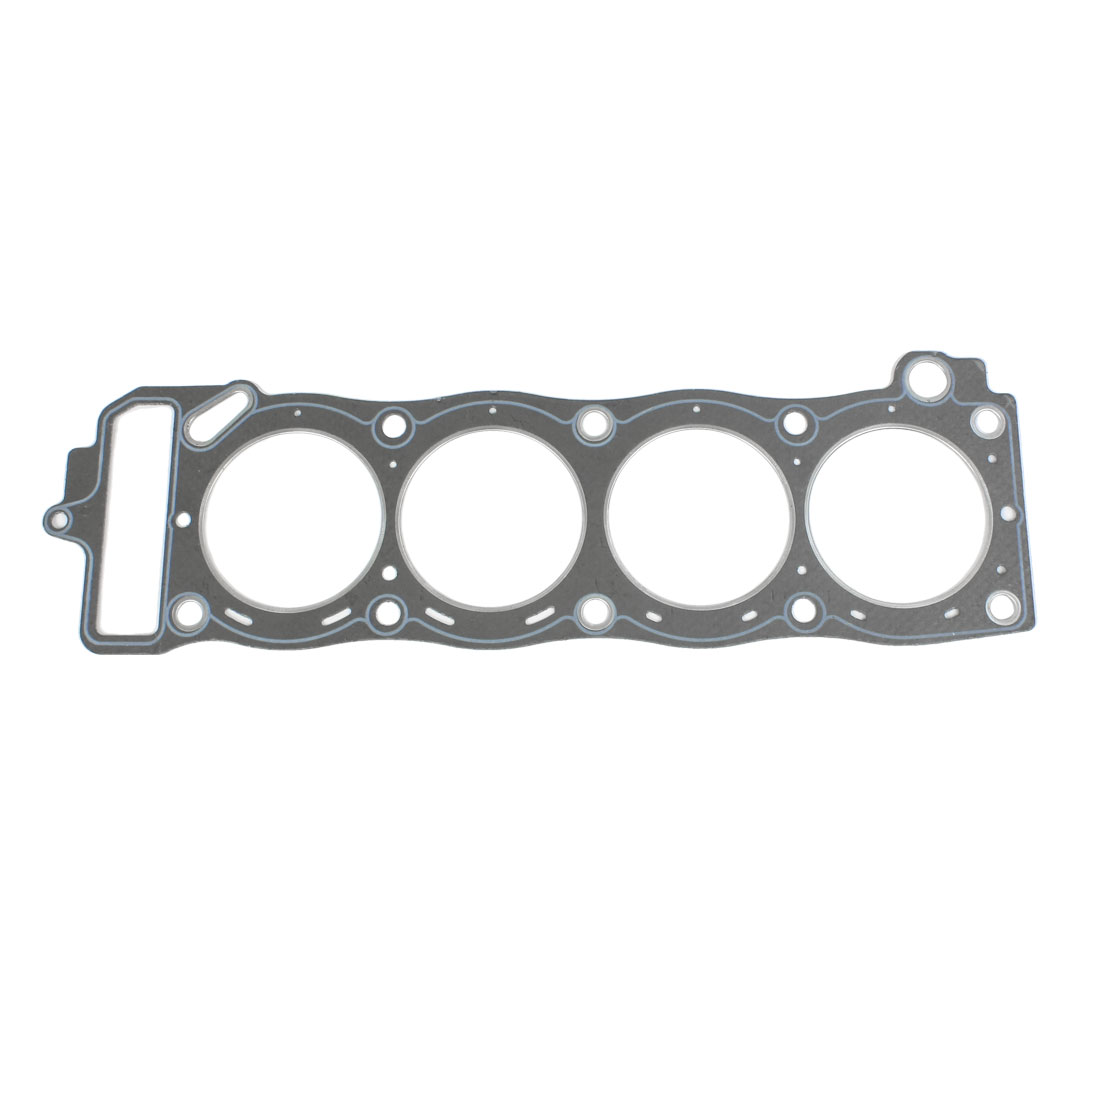 Cylinder Head Gasket Spacer for Toyota 4Runner Toyota 4Runner